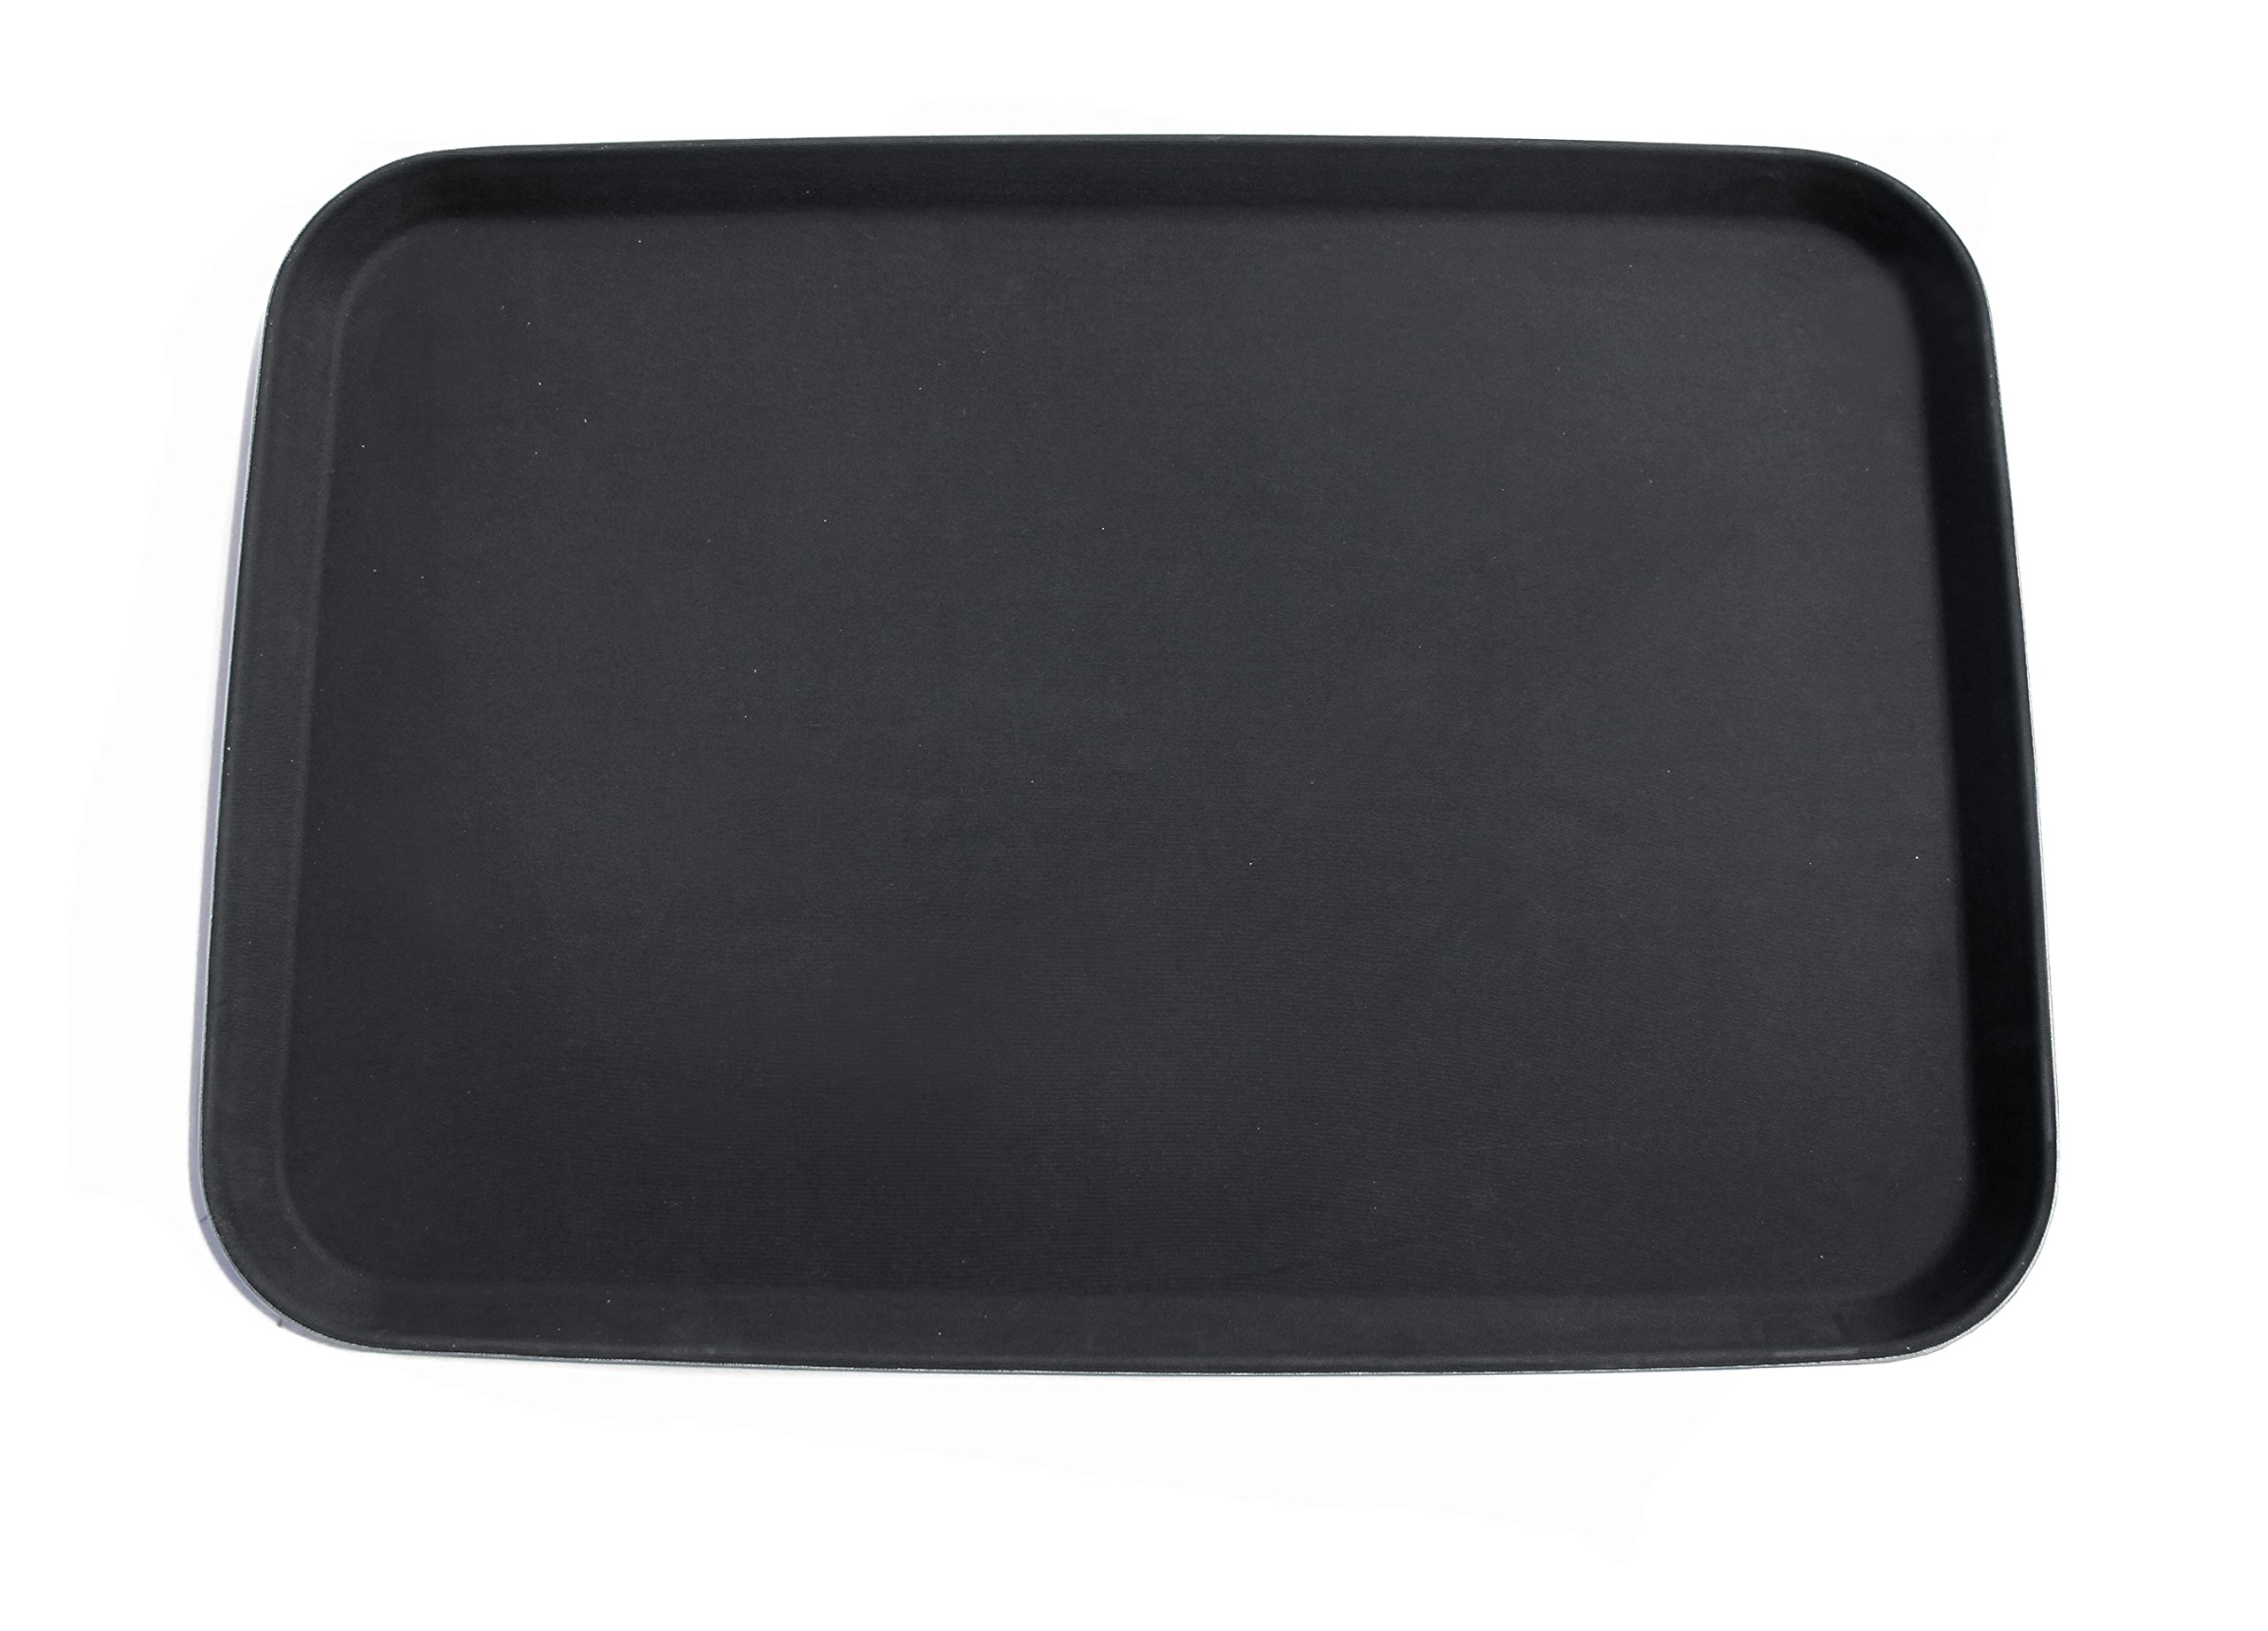 New Star Foodservice 25415 Non-Slip Tray, Plastic, Rubber Lined, Rectangular, 18 x 26 inch,  Pack of 12, Black